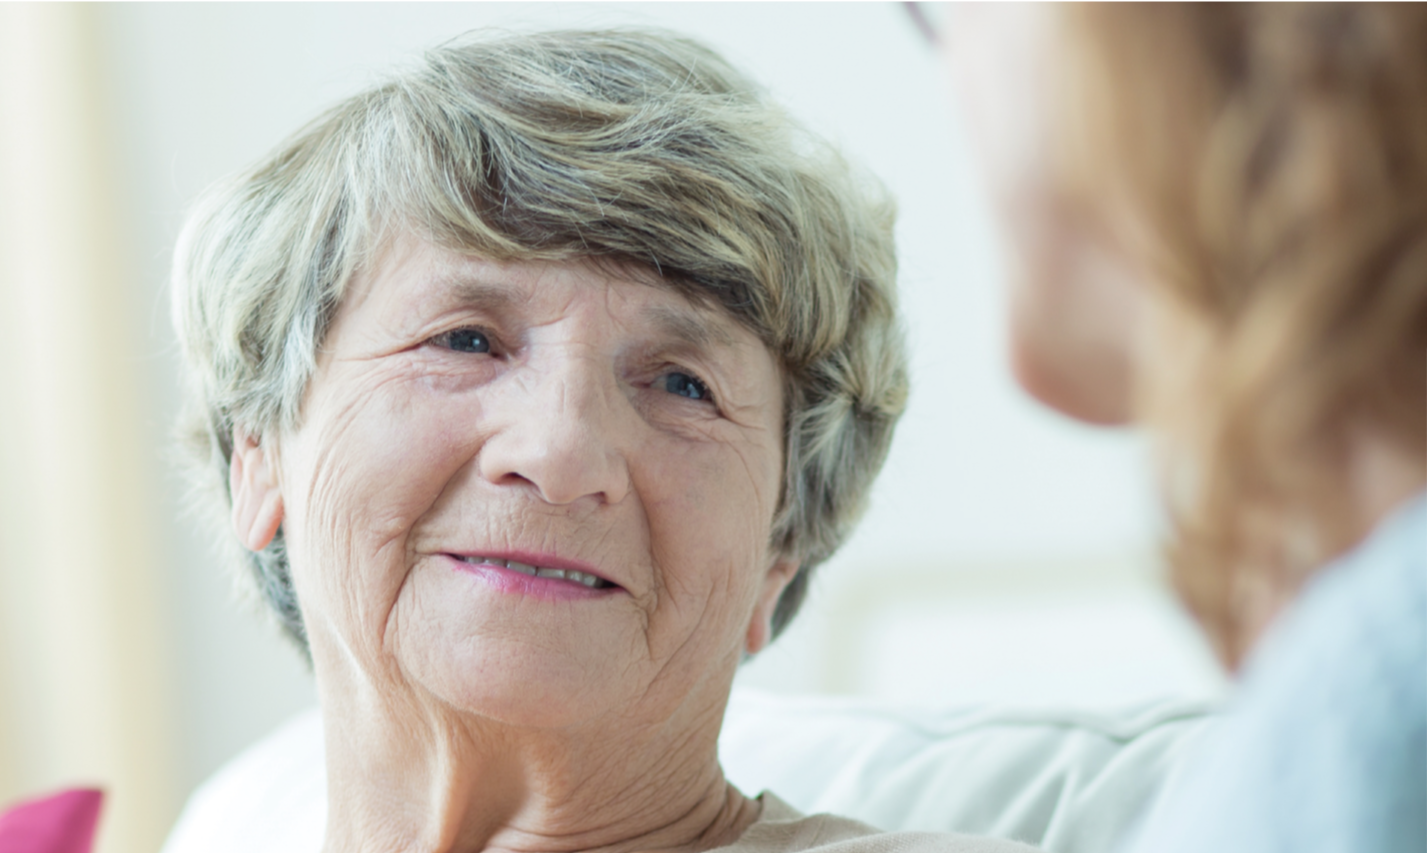 Elderly woman smiling in conversation with another woman